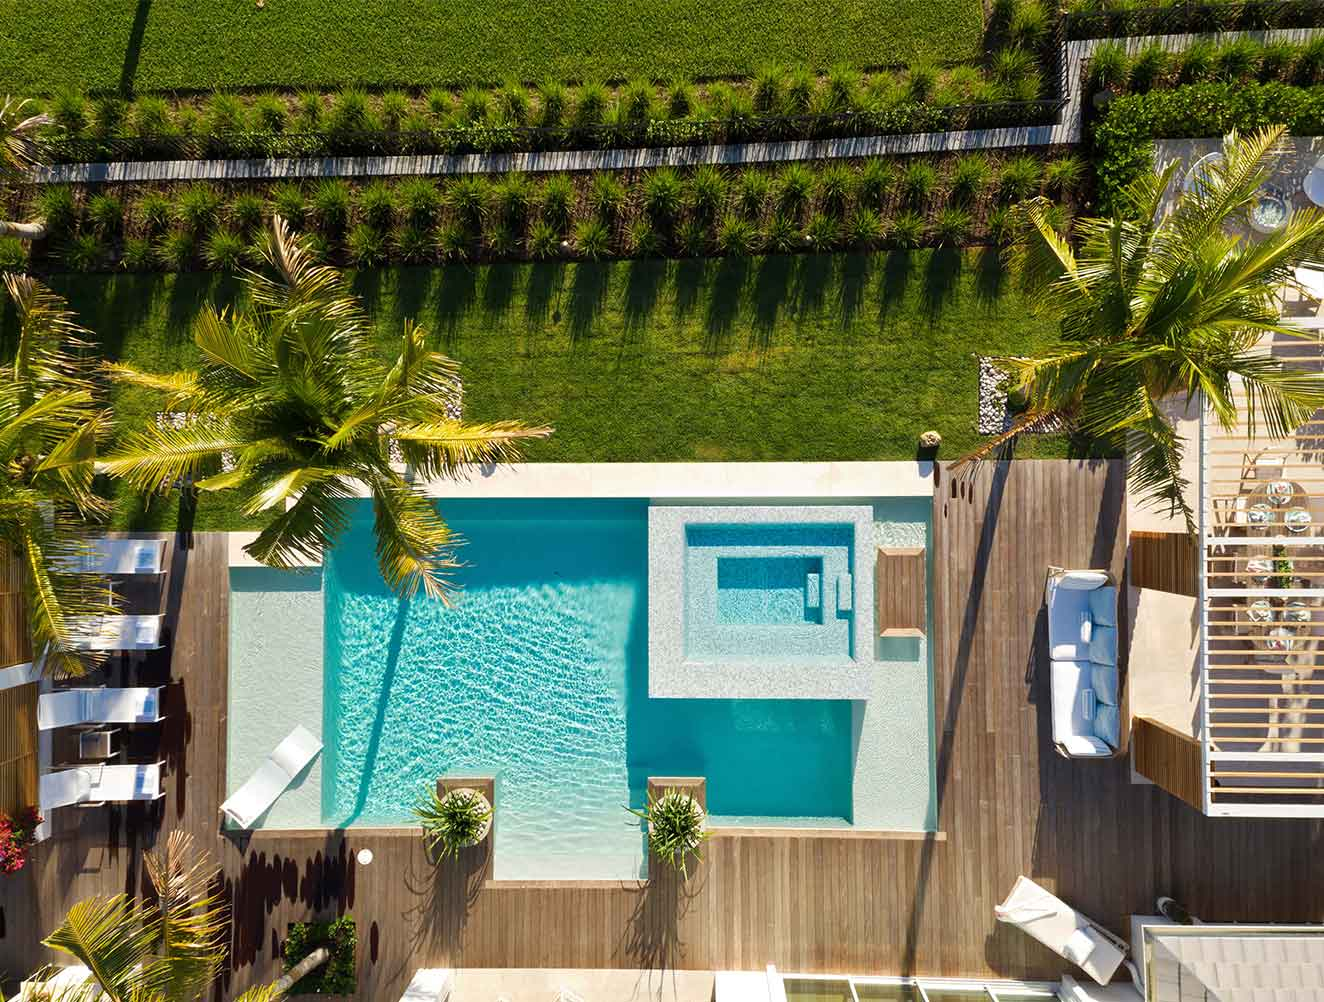 Portfolio of Pools in Naples, Florida Luxury Homes. Infinity pool with Bayfront views aerial photography. Designed by Kukk Architecture & Design Naples